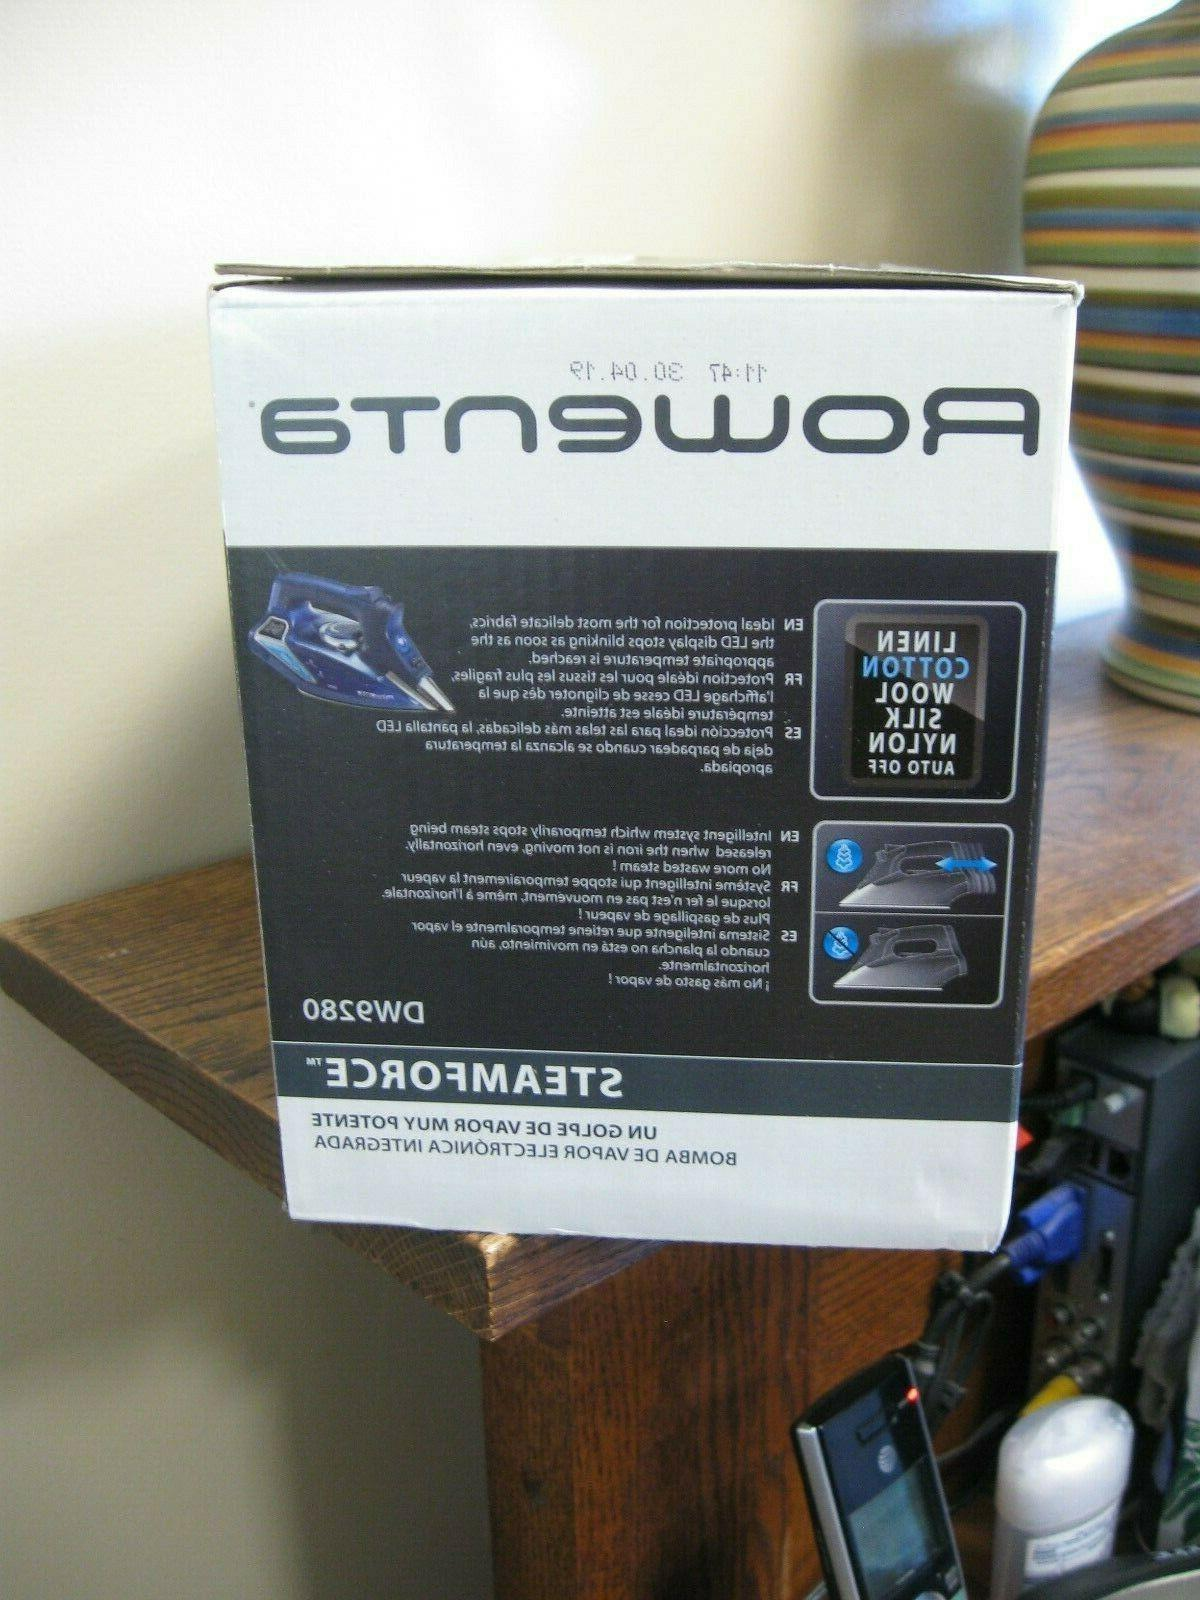 New! Rowenta Steamforce Iron with Off DW9280